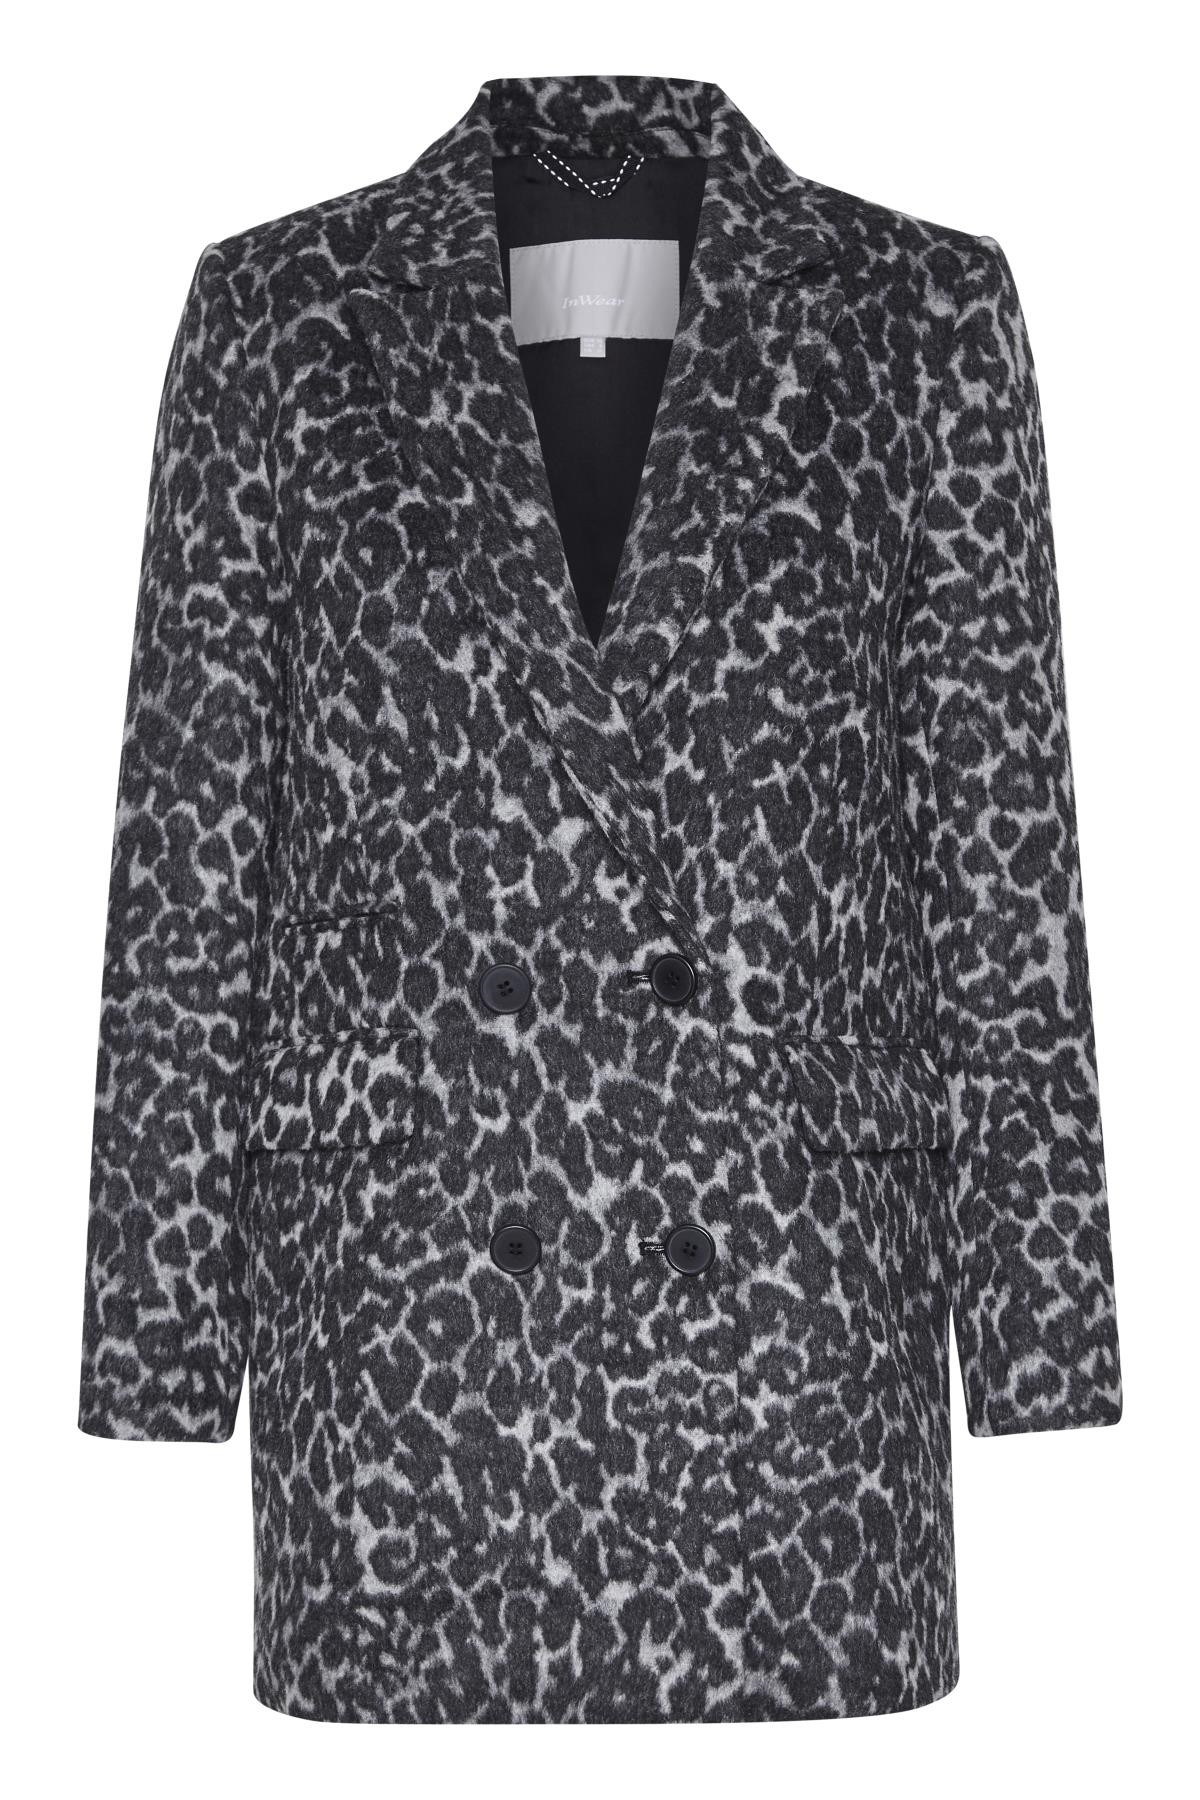 Image of   InWear GIOVANNA BLAZER 30103438 (Leopard Non-color 11367, 40)